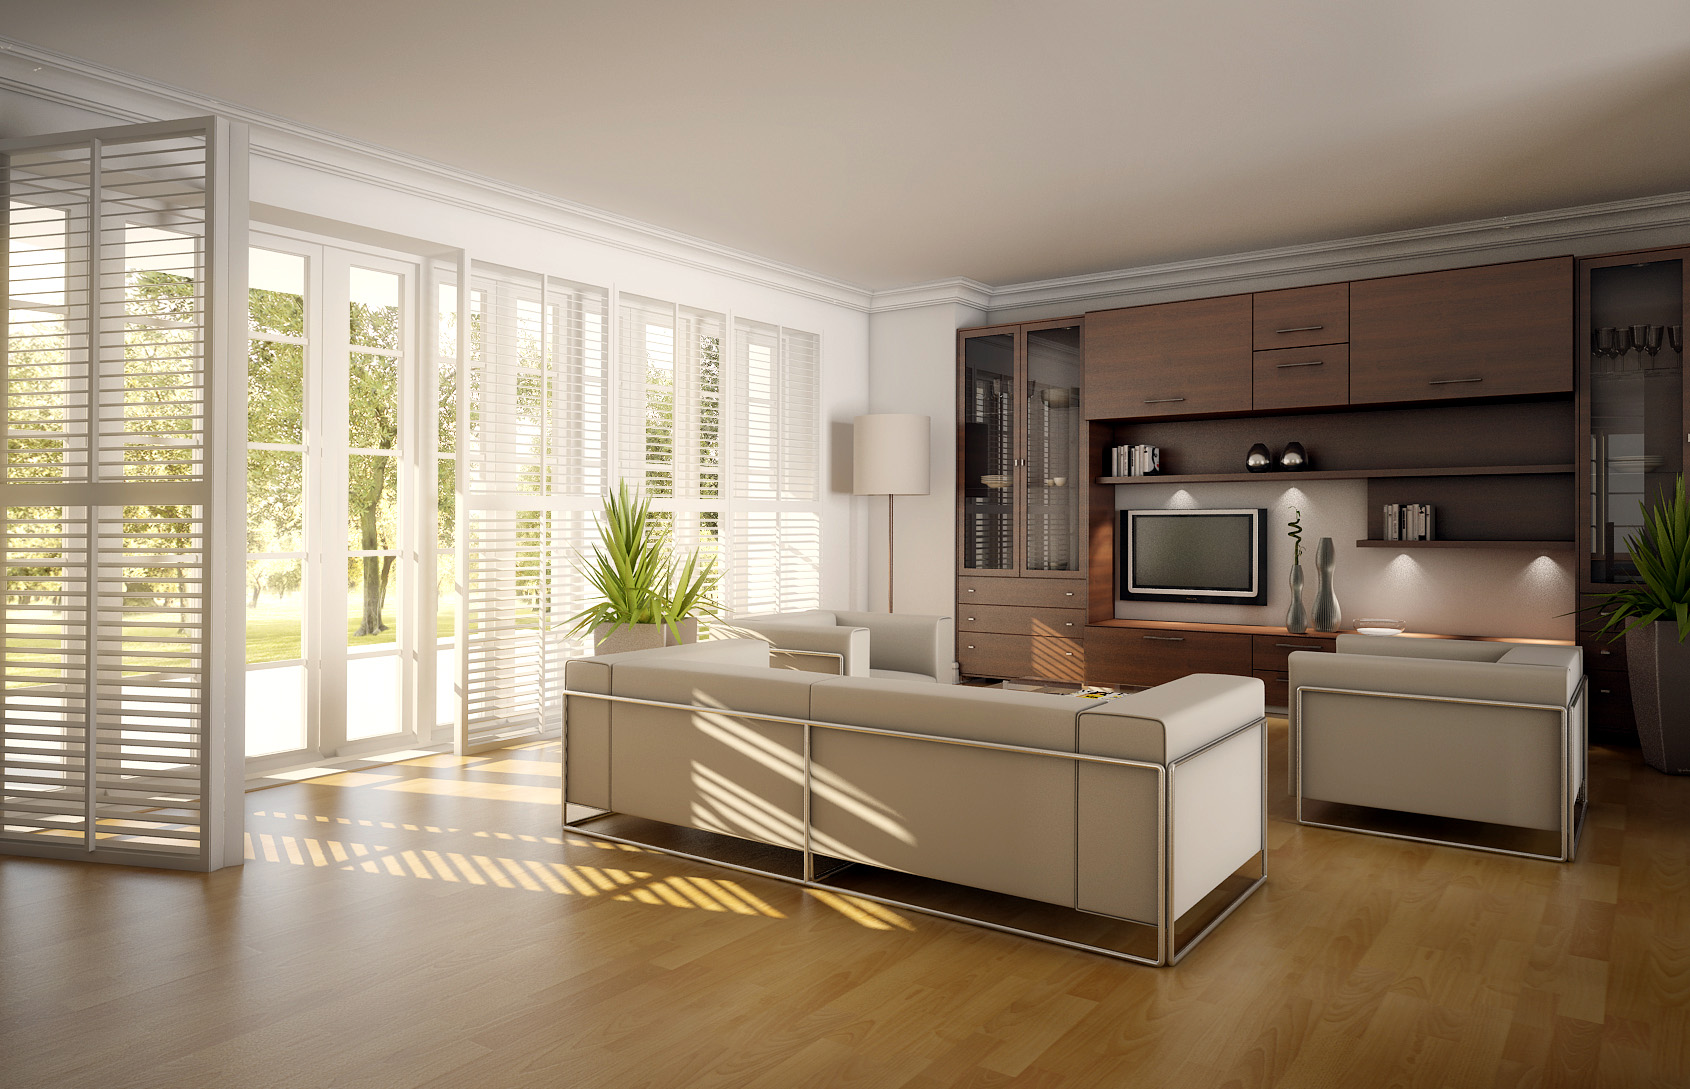 design for living rooms una comedor abierto al jard 237 n 171 imagotechnics 17232